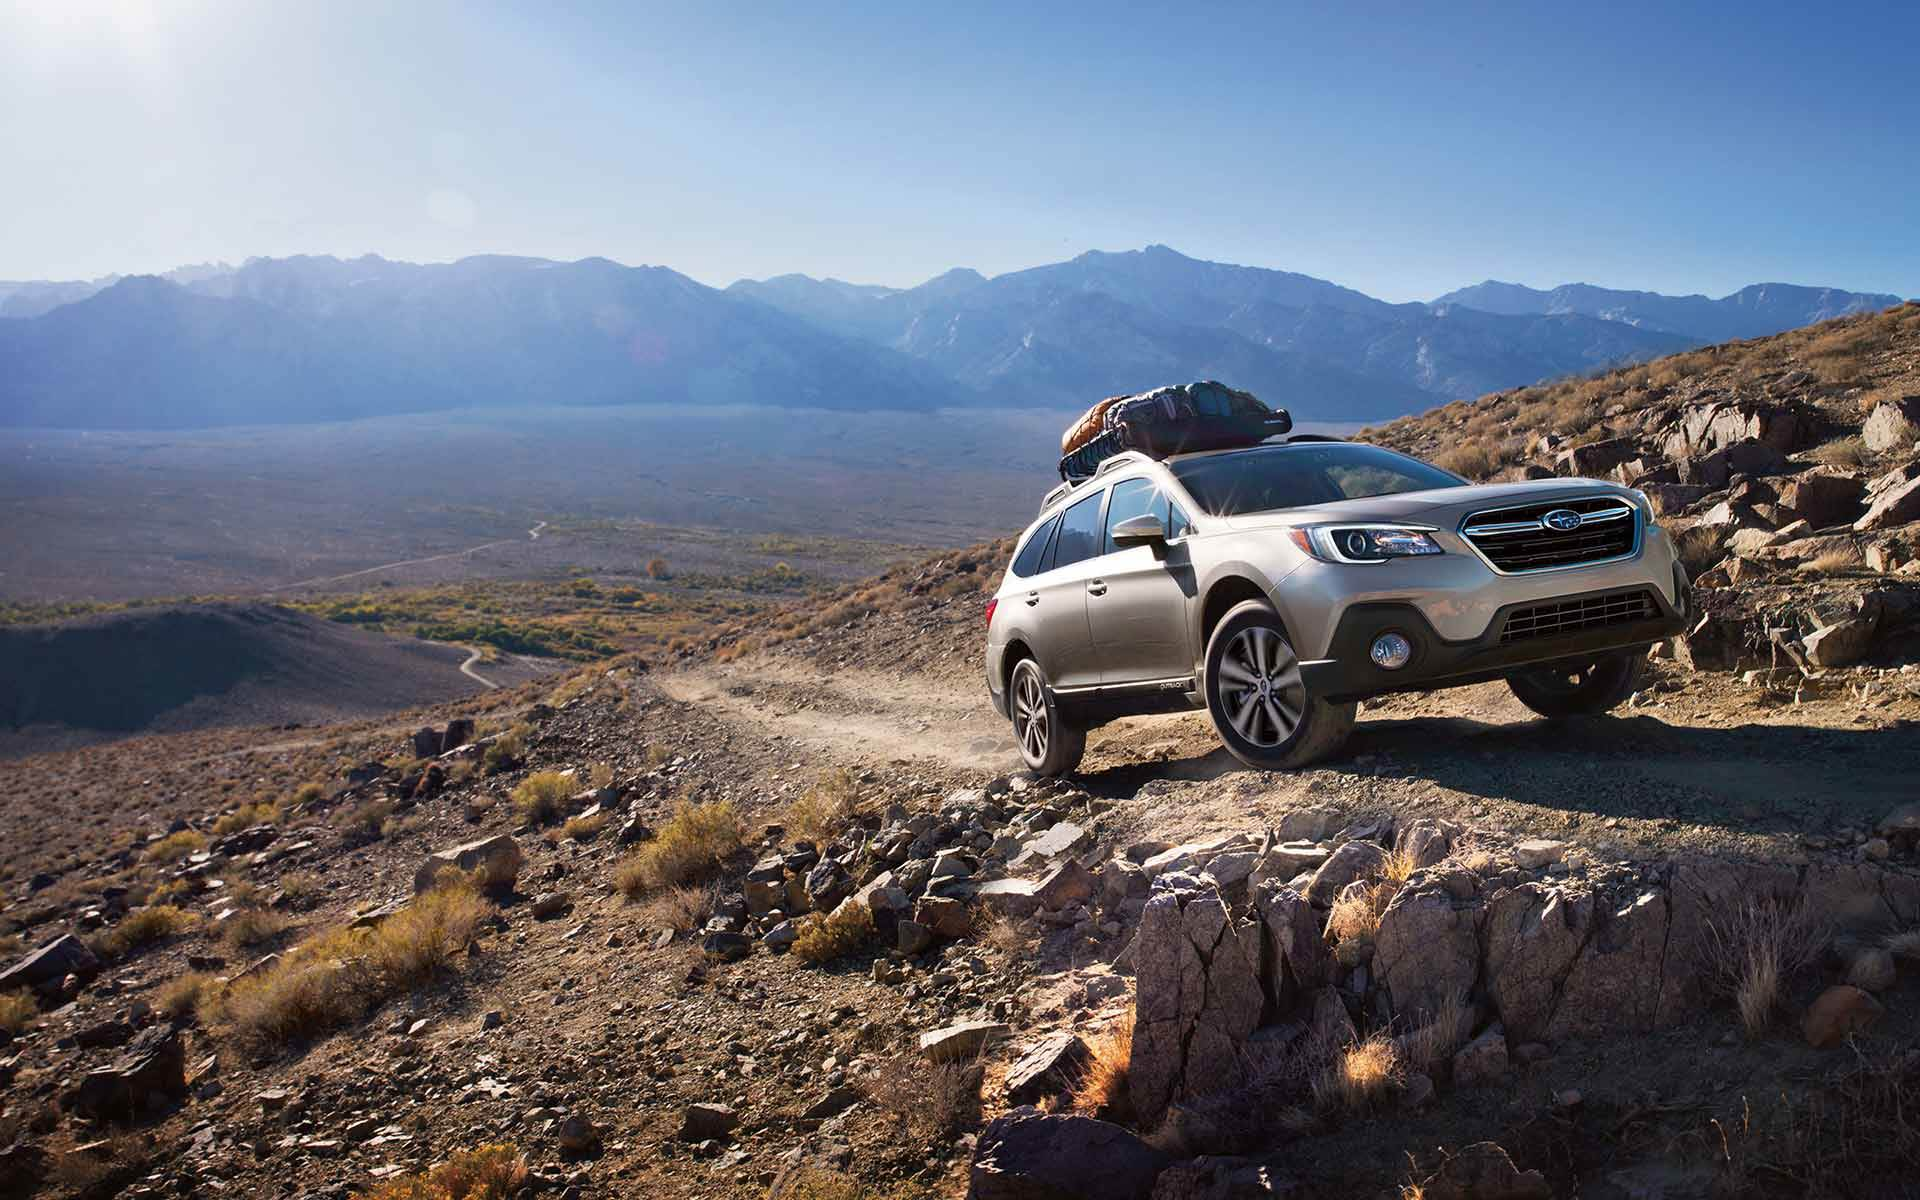 2019 subaru outback vs 2019 buick regal tourx comparison review by east hills subaru roslyn ny. Black Bedroom Furniture Sets. Home Design Ideas